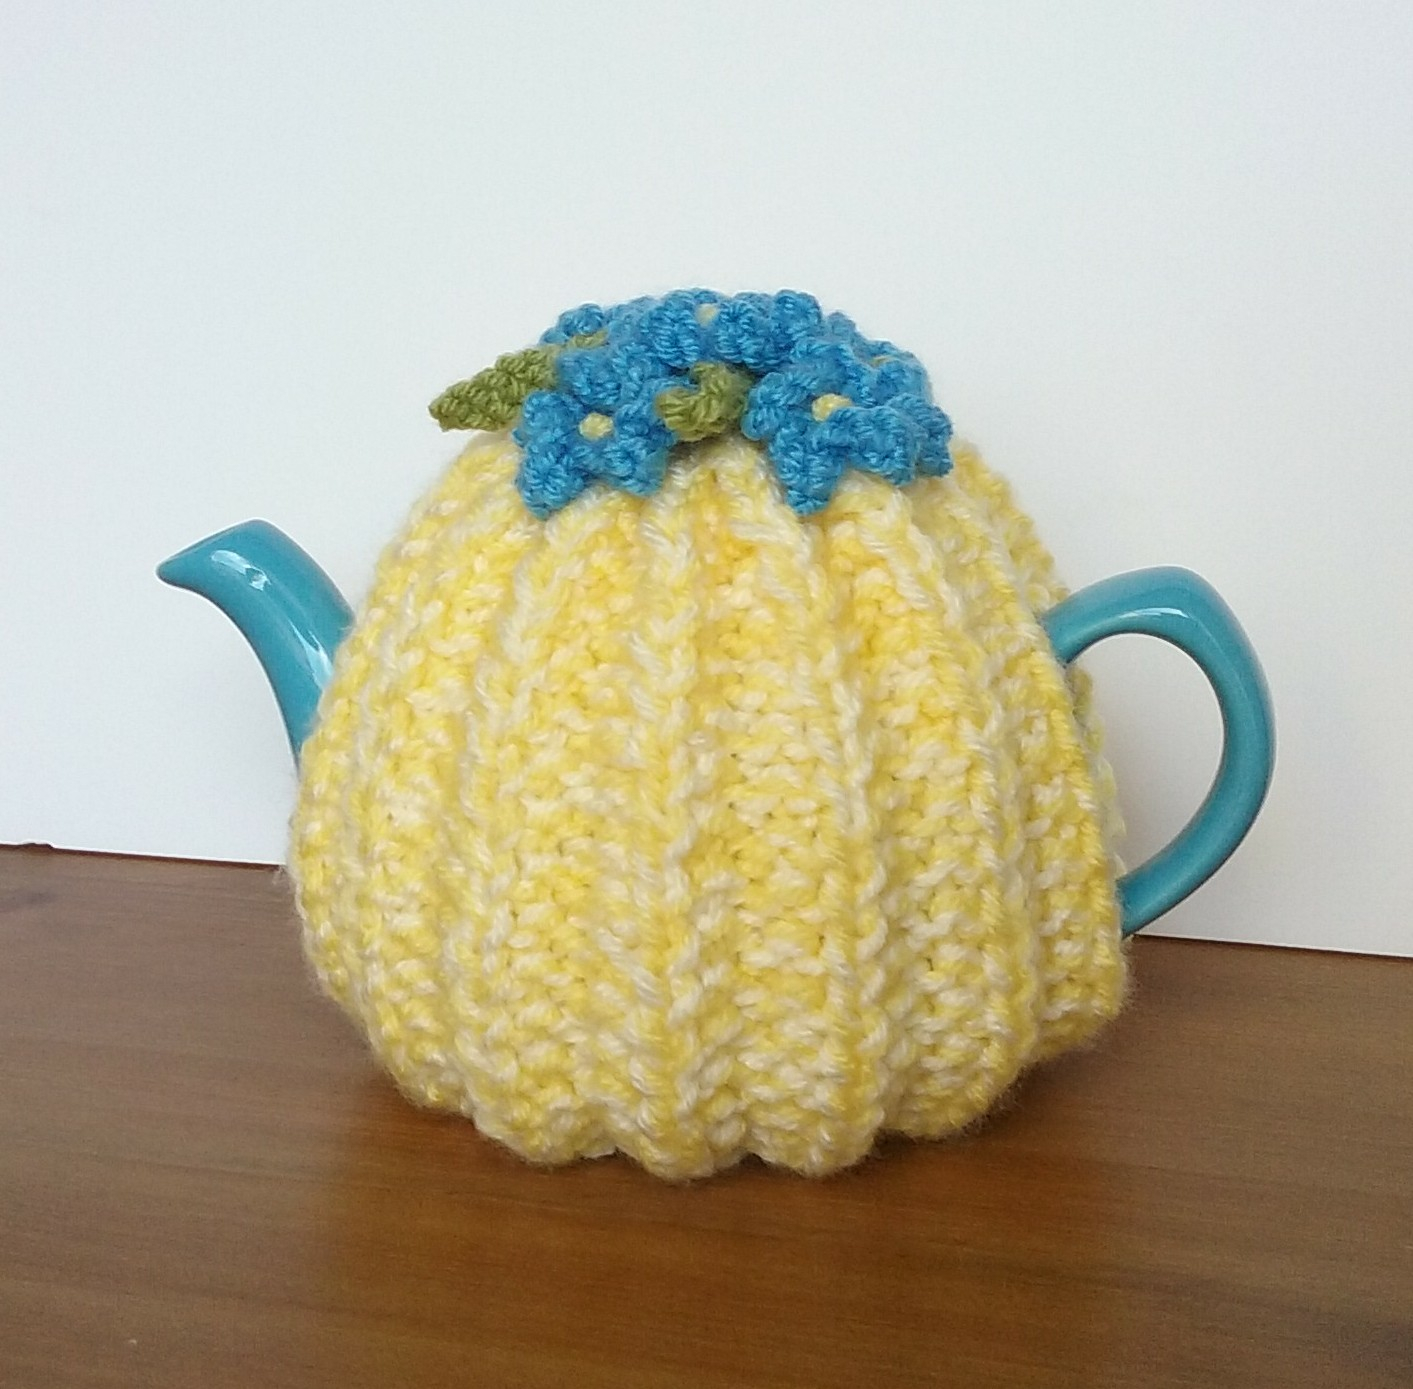 Knitted Tea Cosy Pattern Easy Linmary Knits Rib One Cup Tea Cosy